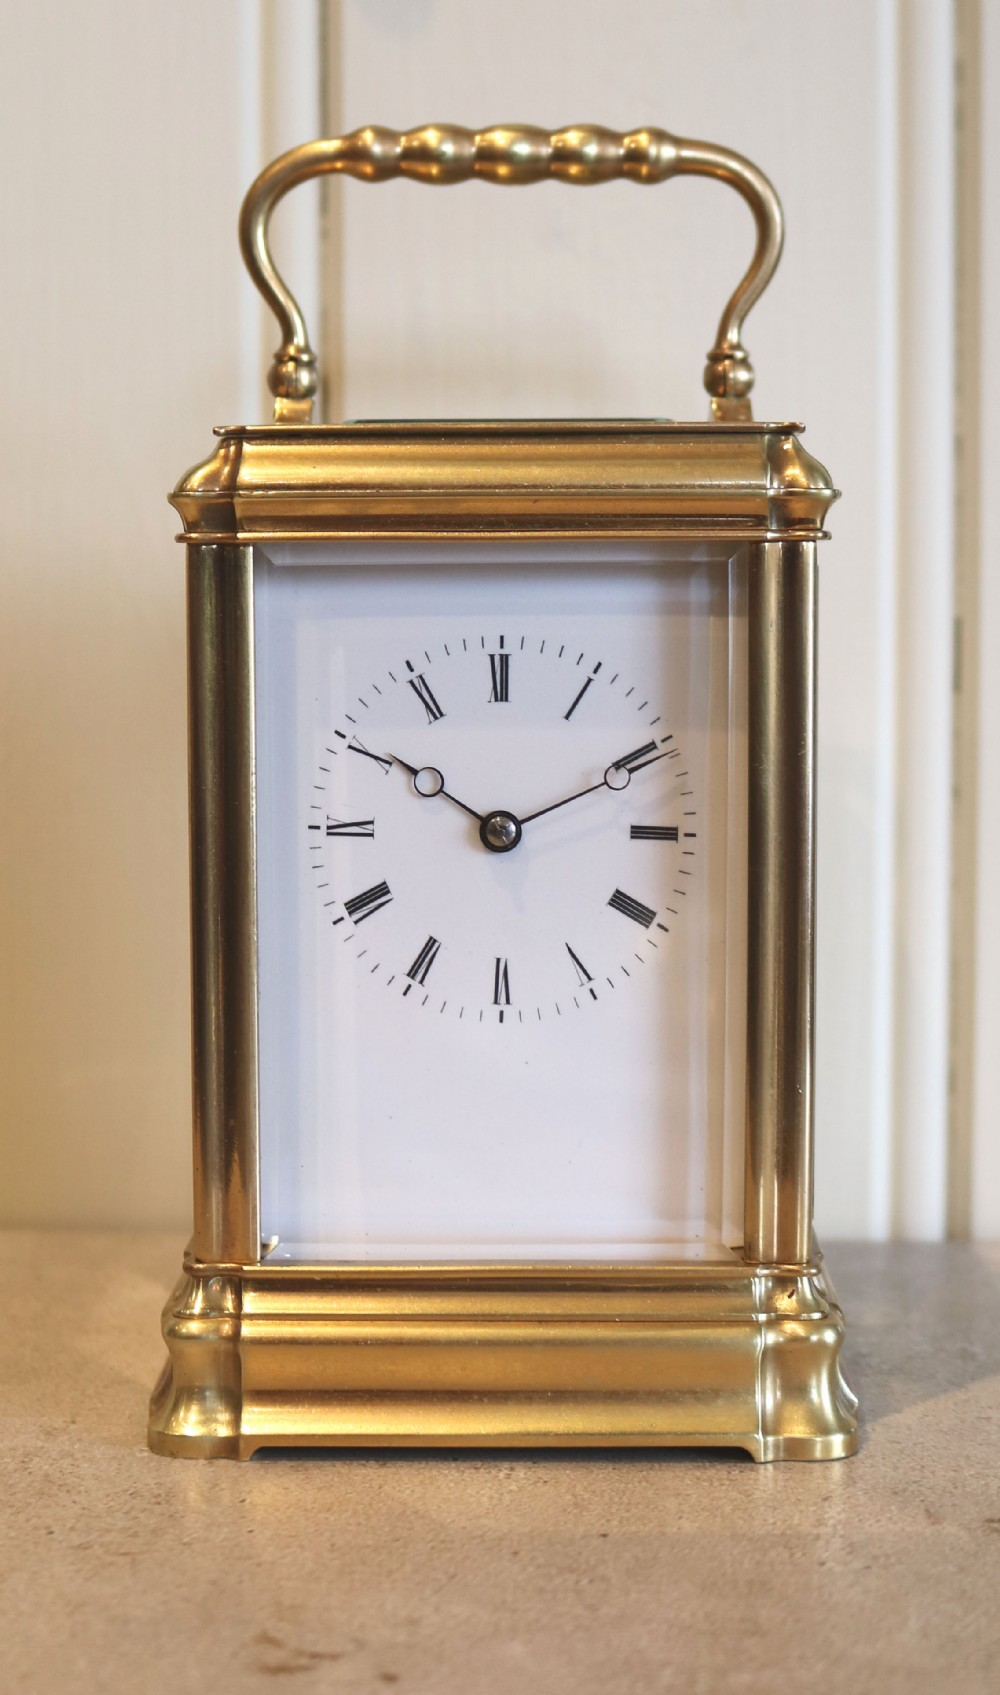 bell striking gorge case carriage clock france c 1880